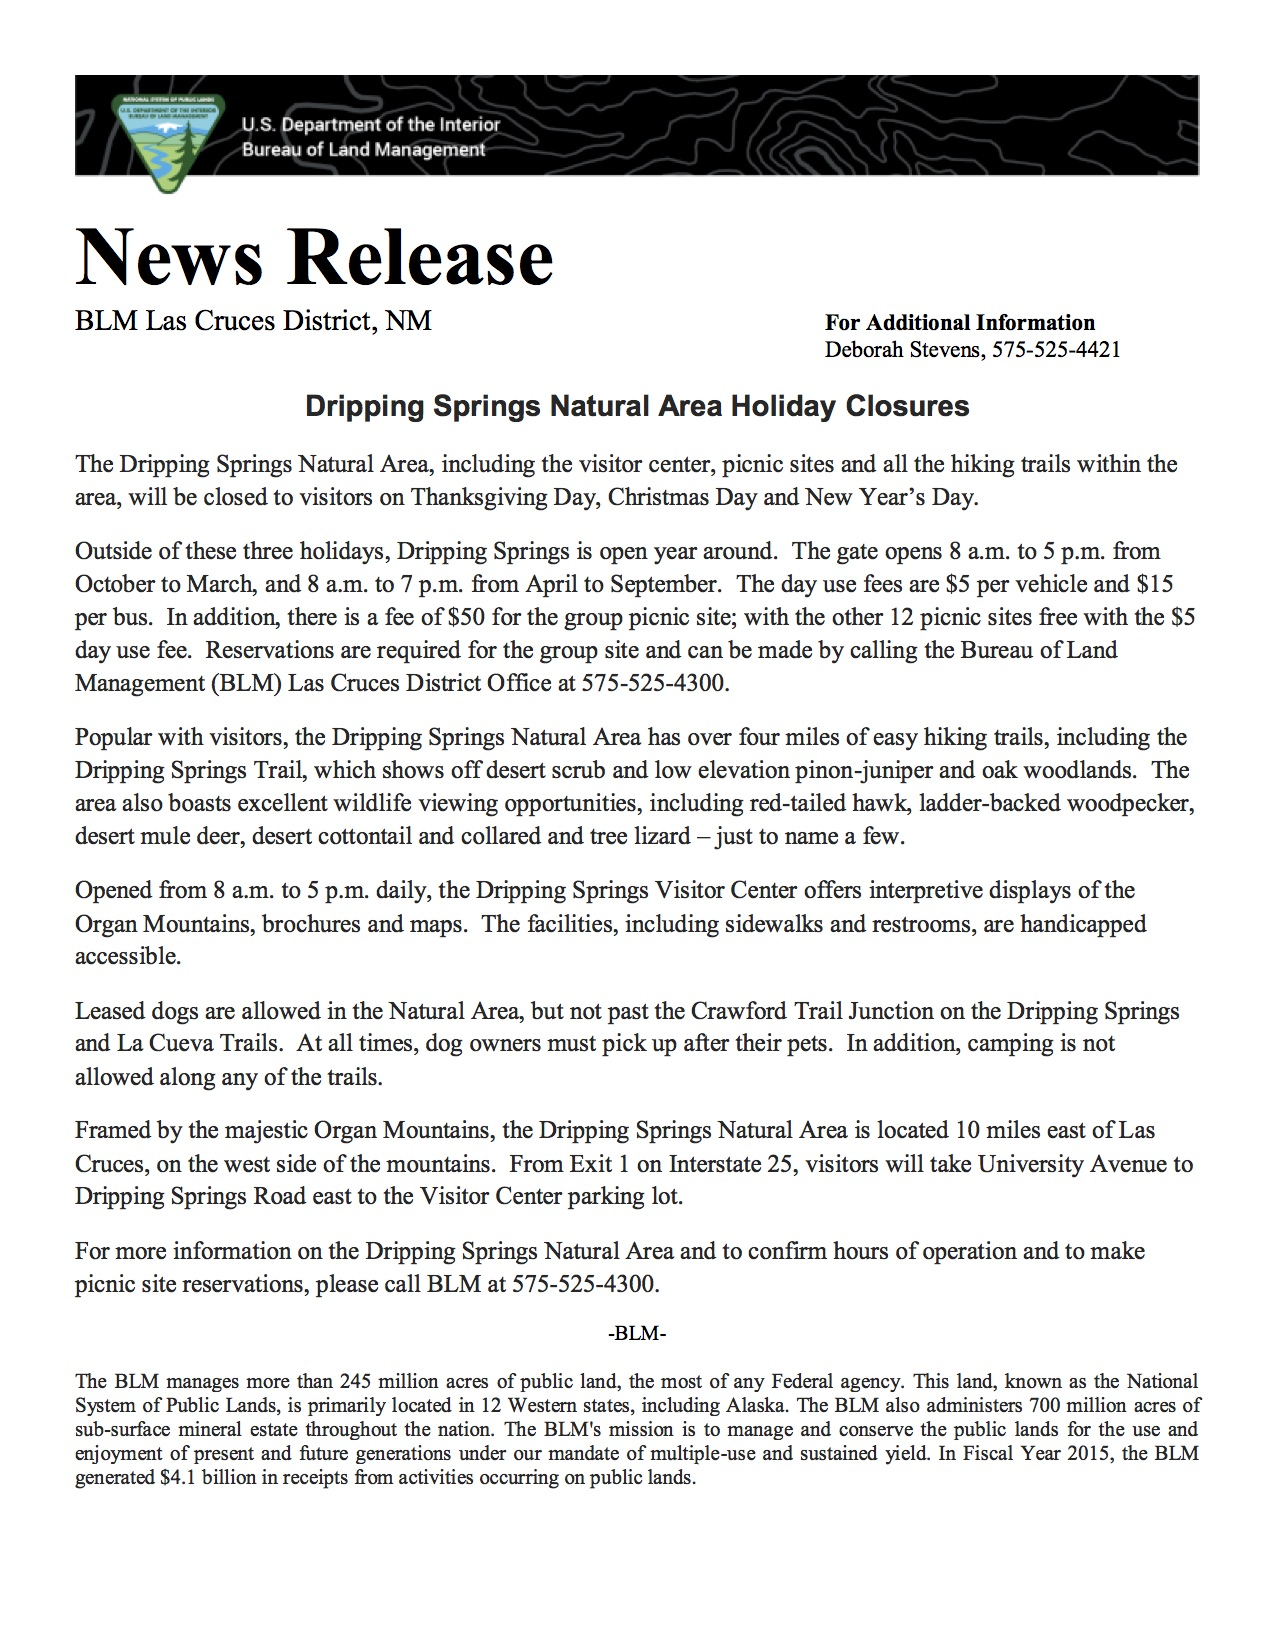 111816-dripping-springs-holiday-closure